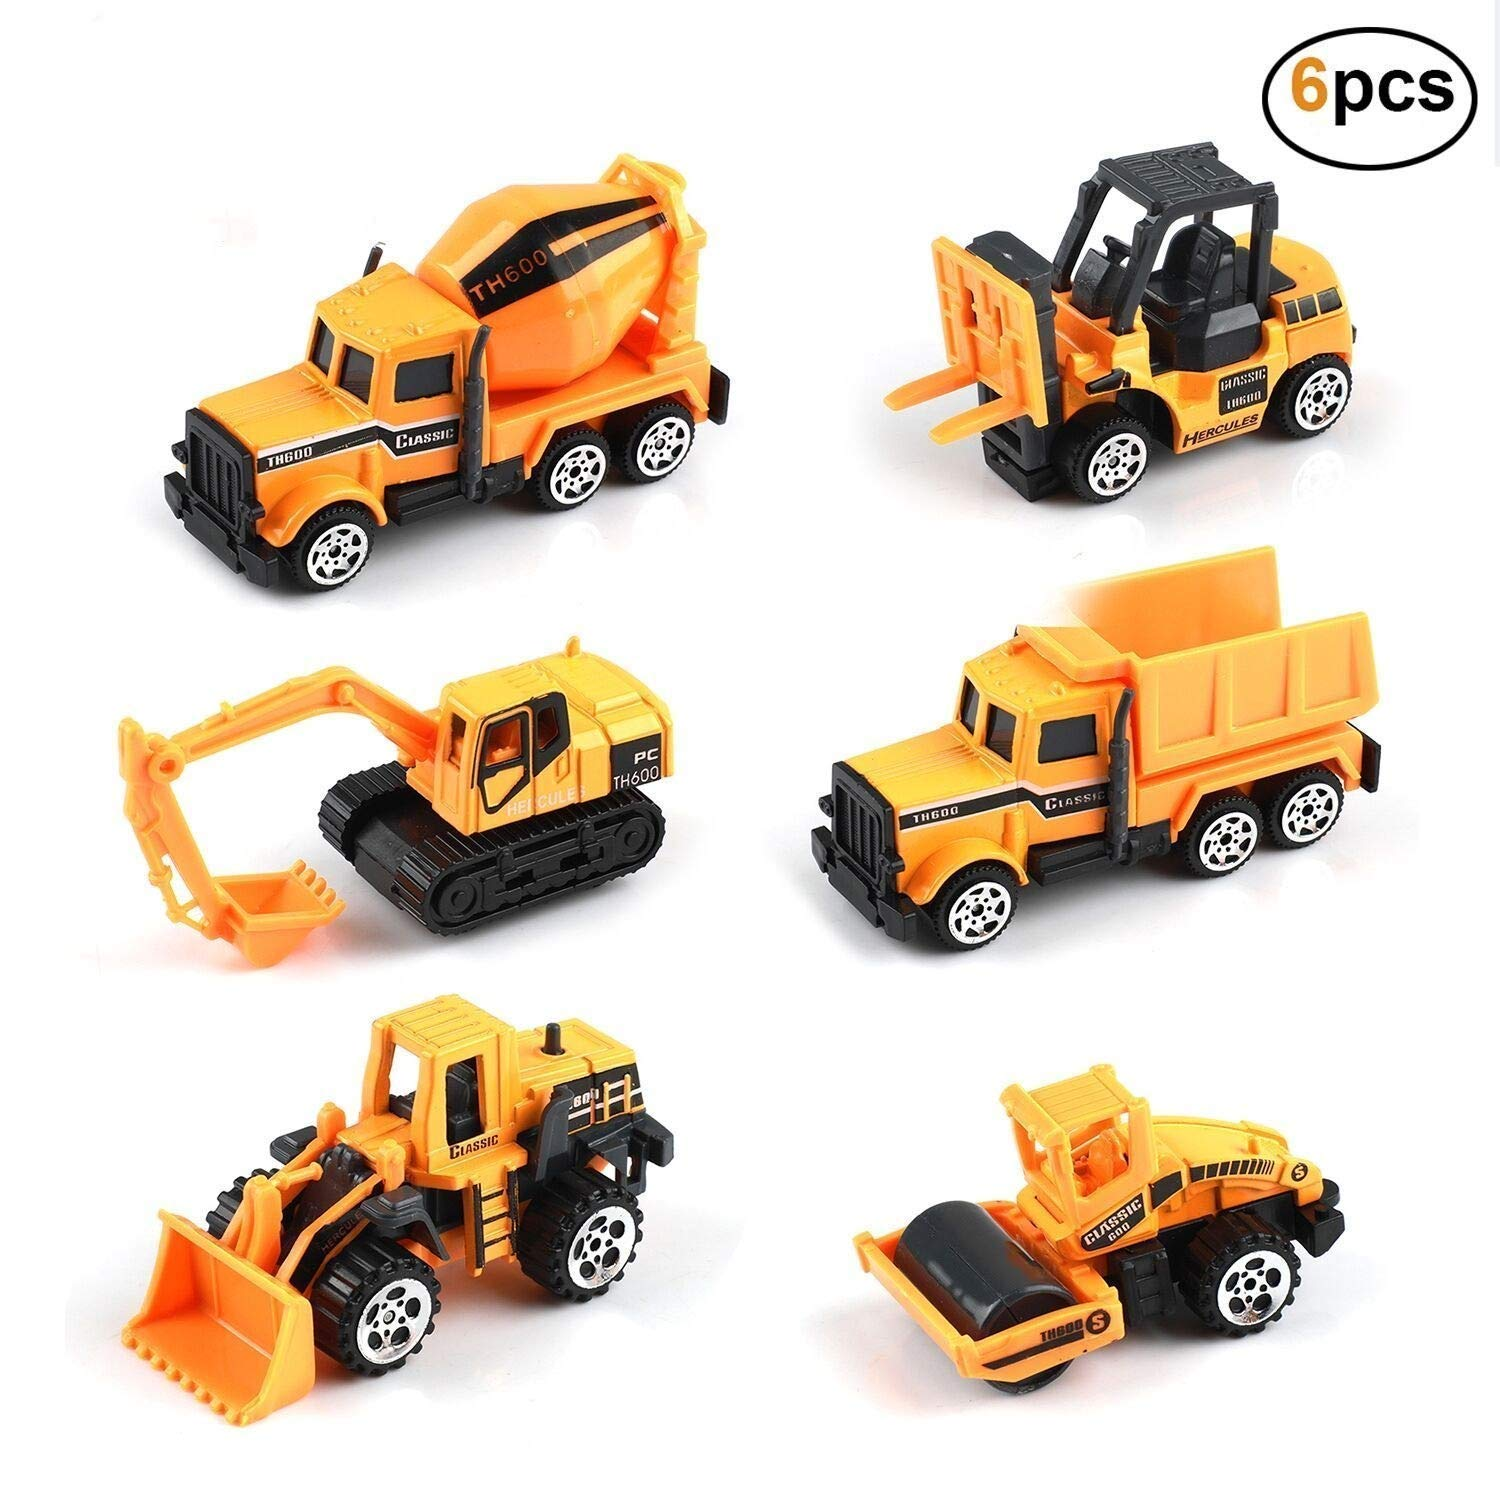 Kids Construction Toys - Kids Birthday Gifts, 6 Pcs Play Trucks Toy Construction Truck Toddlers Boys Small Kid Toys Mini Car Toys Set Die Cast Engineering Excavator Digger Friction Powered Push Trucks by Winkon